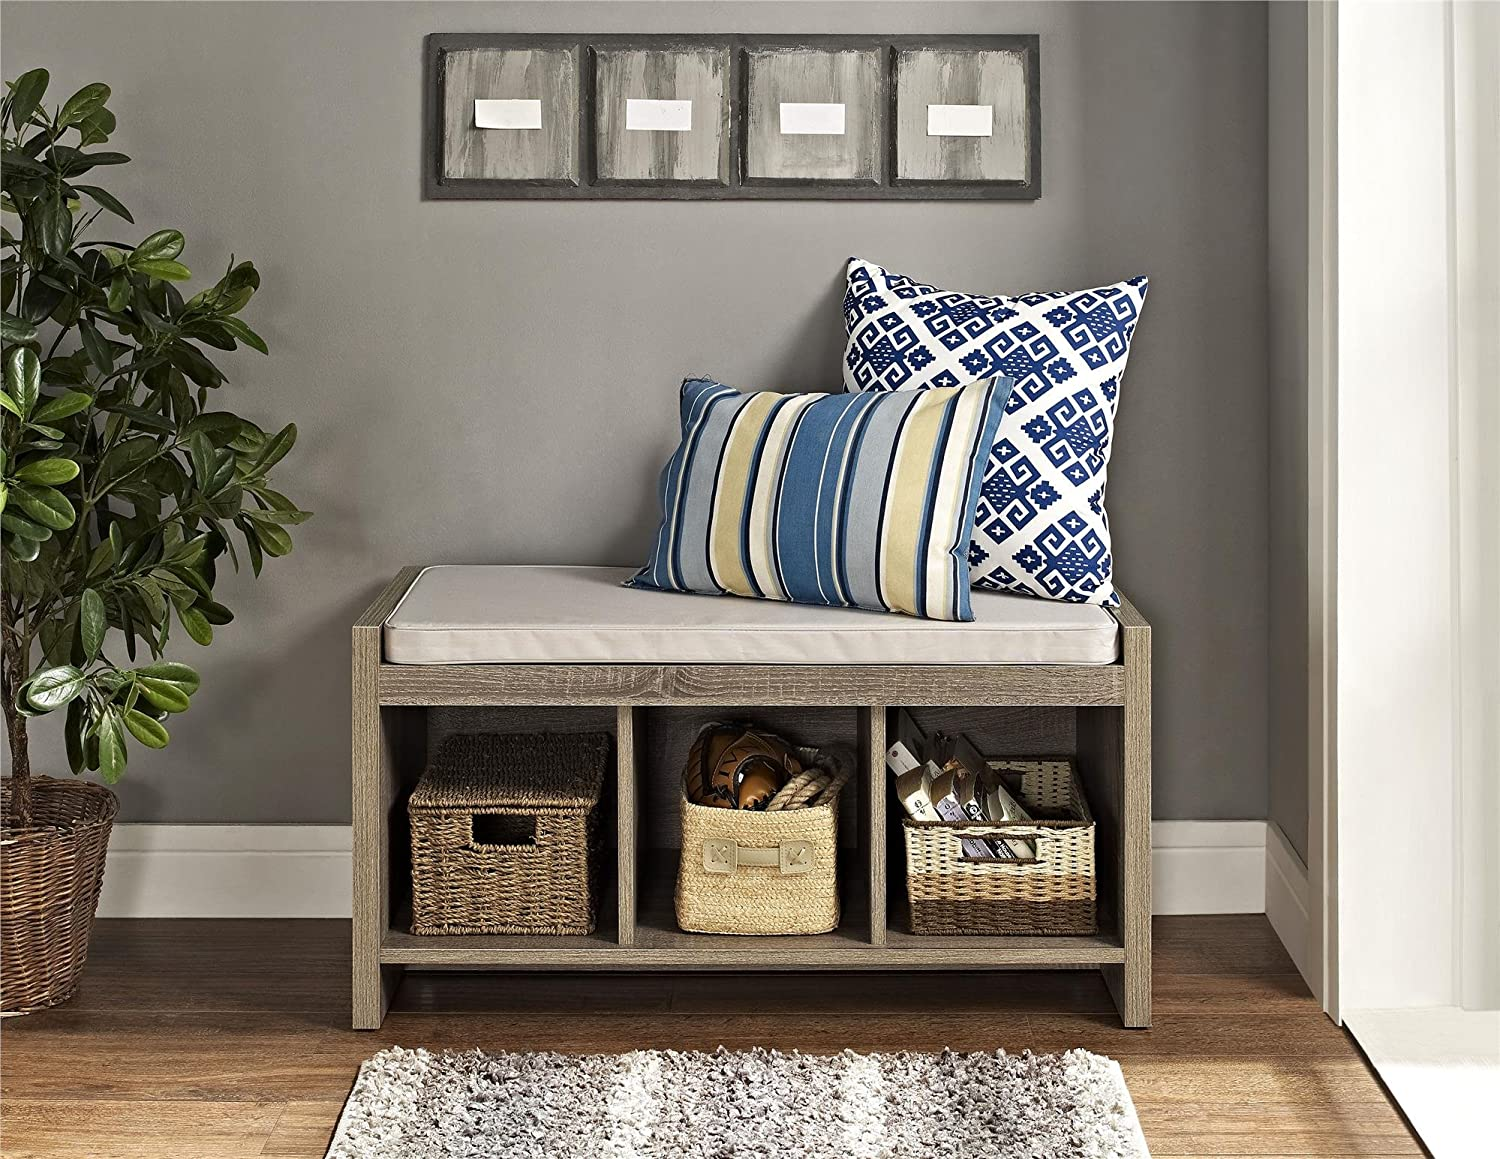 Amazon.com: Ameriwood Home Penelope Entryway Storage Bench with ...